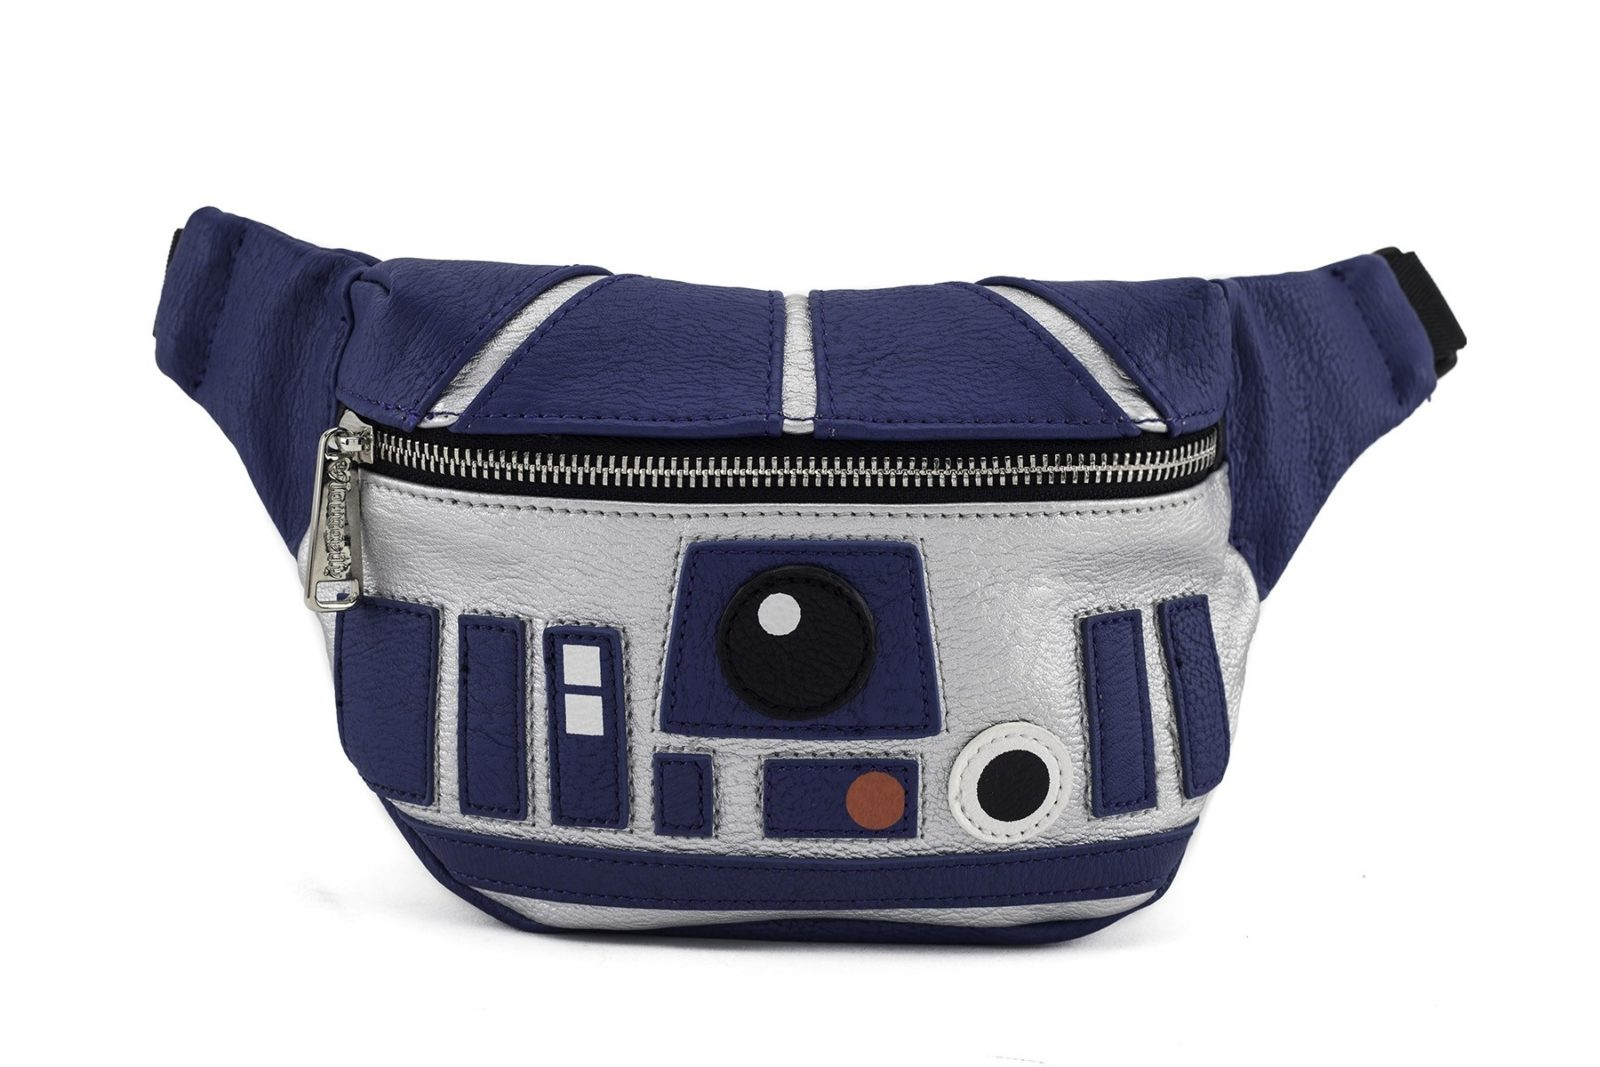 New Loungefly R2-D2 Faux Leather Belt Bag